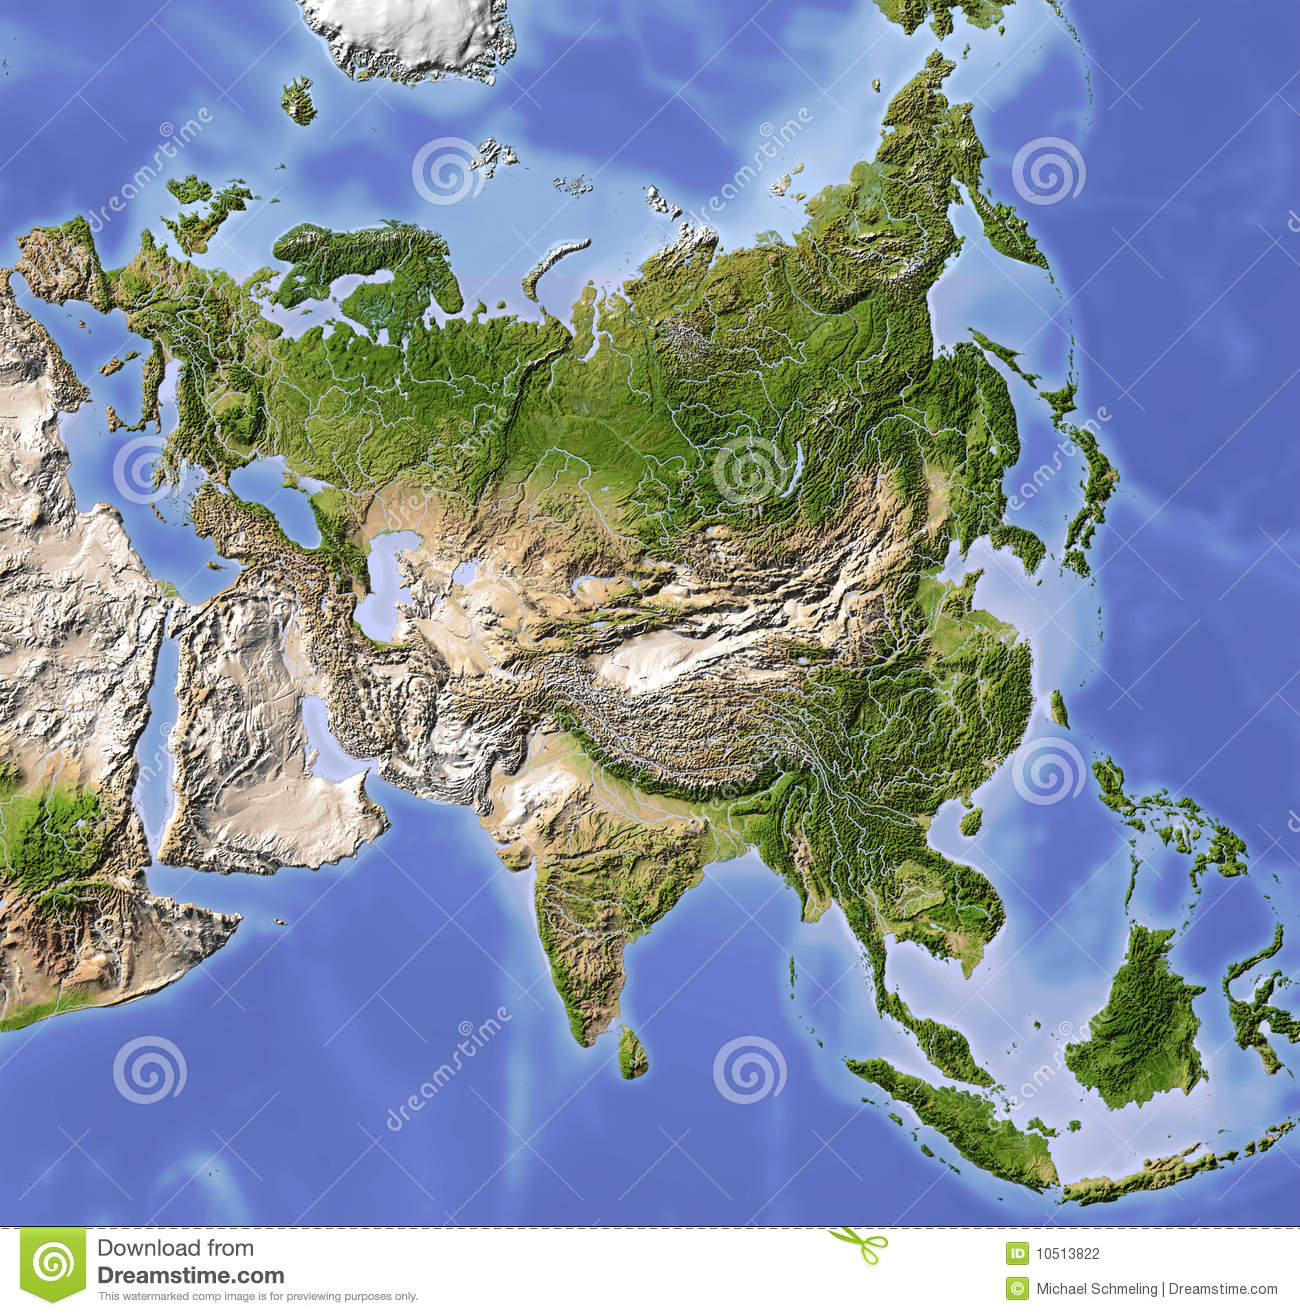 Asia Shaded relief map Colored according to vegetation Includes a 1300x1316